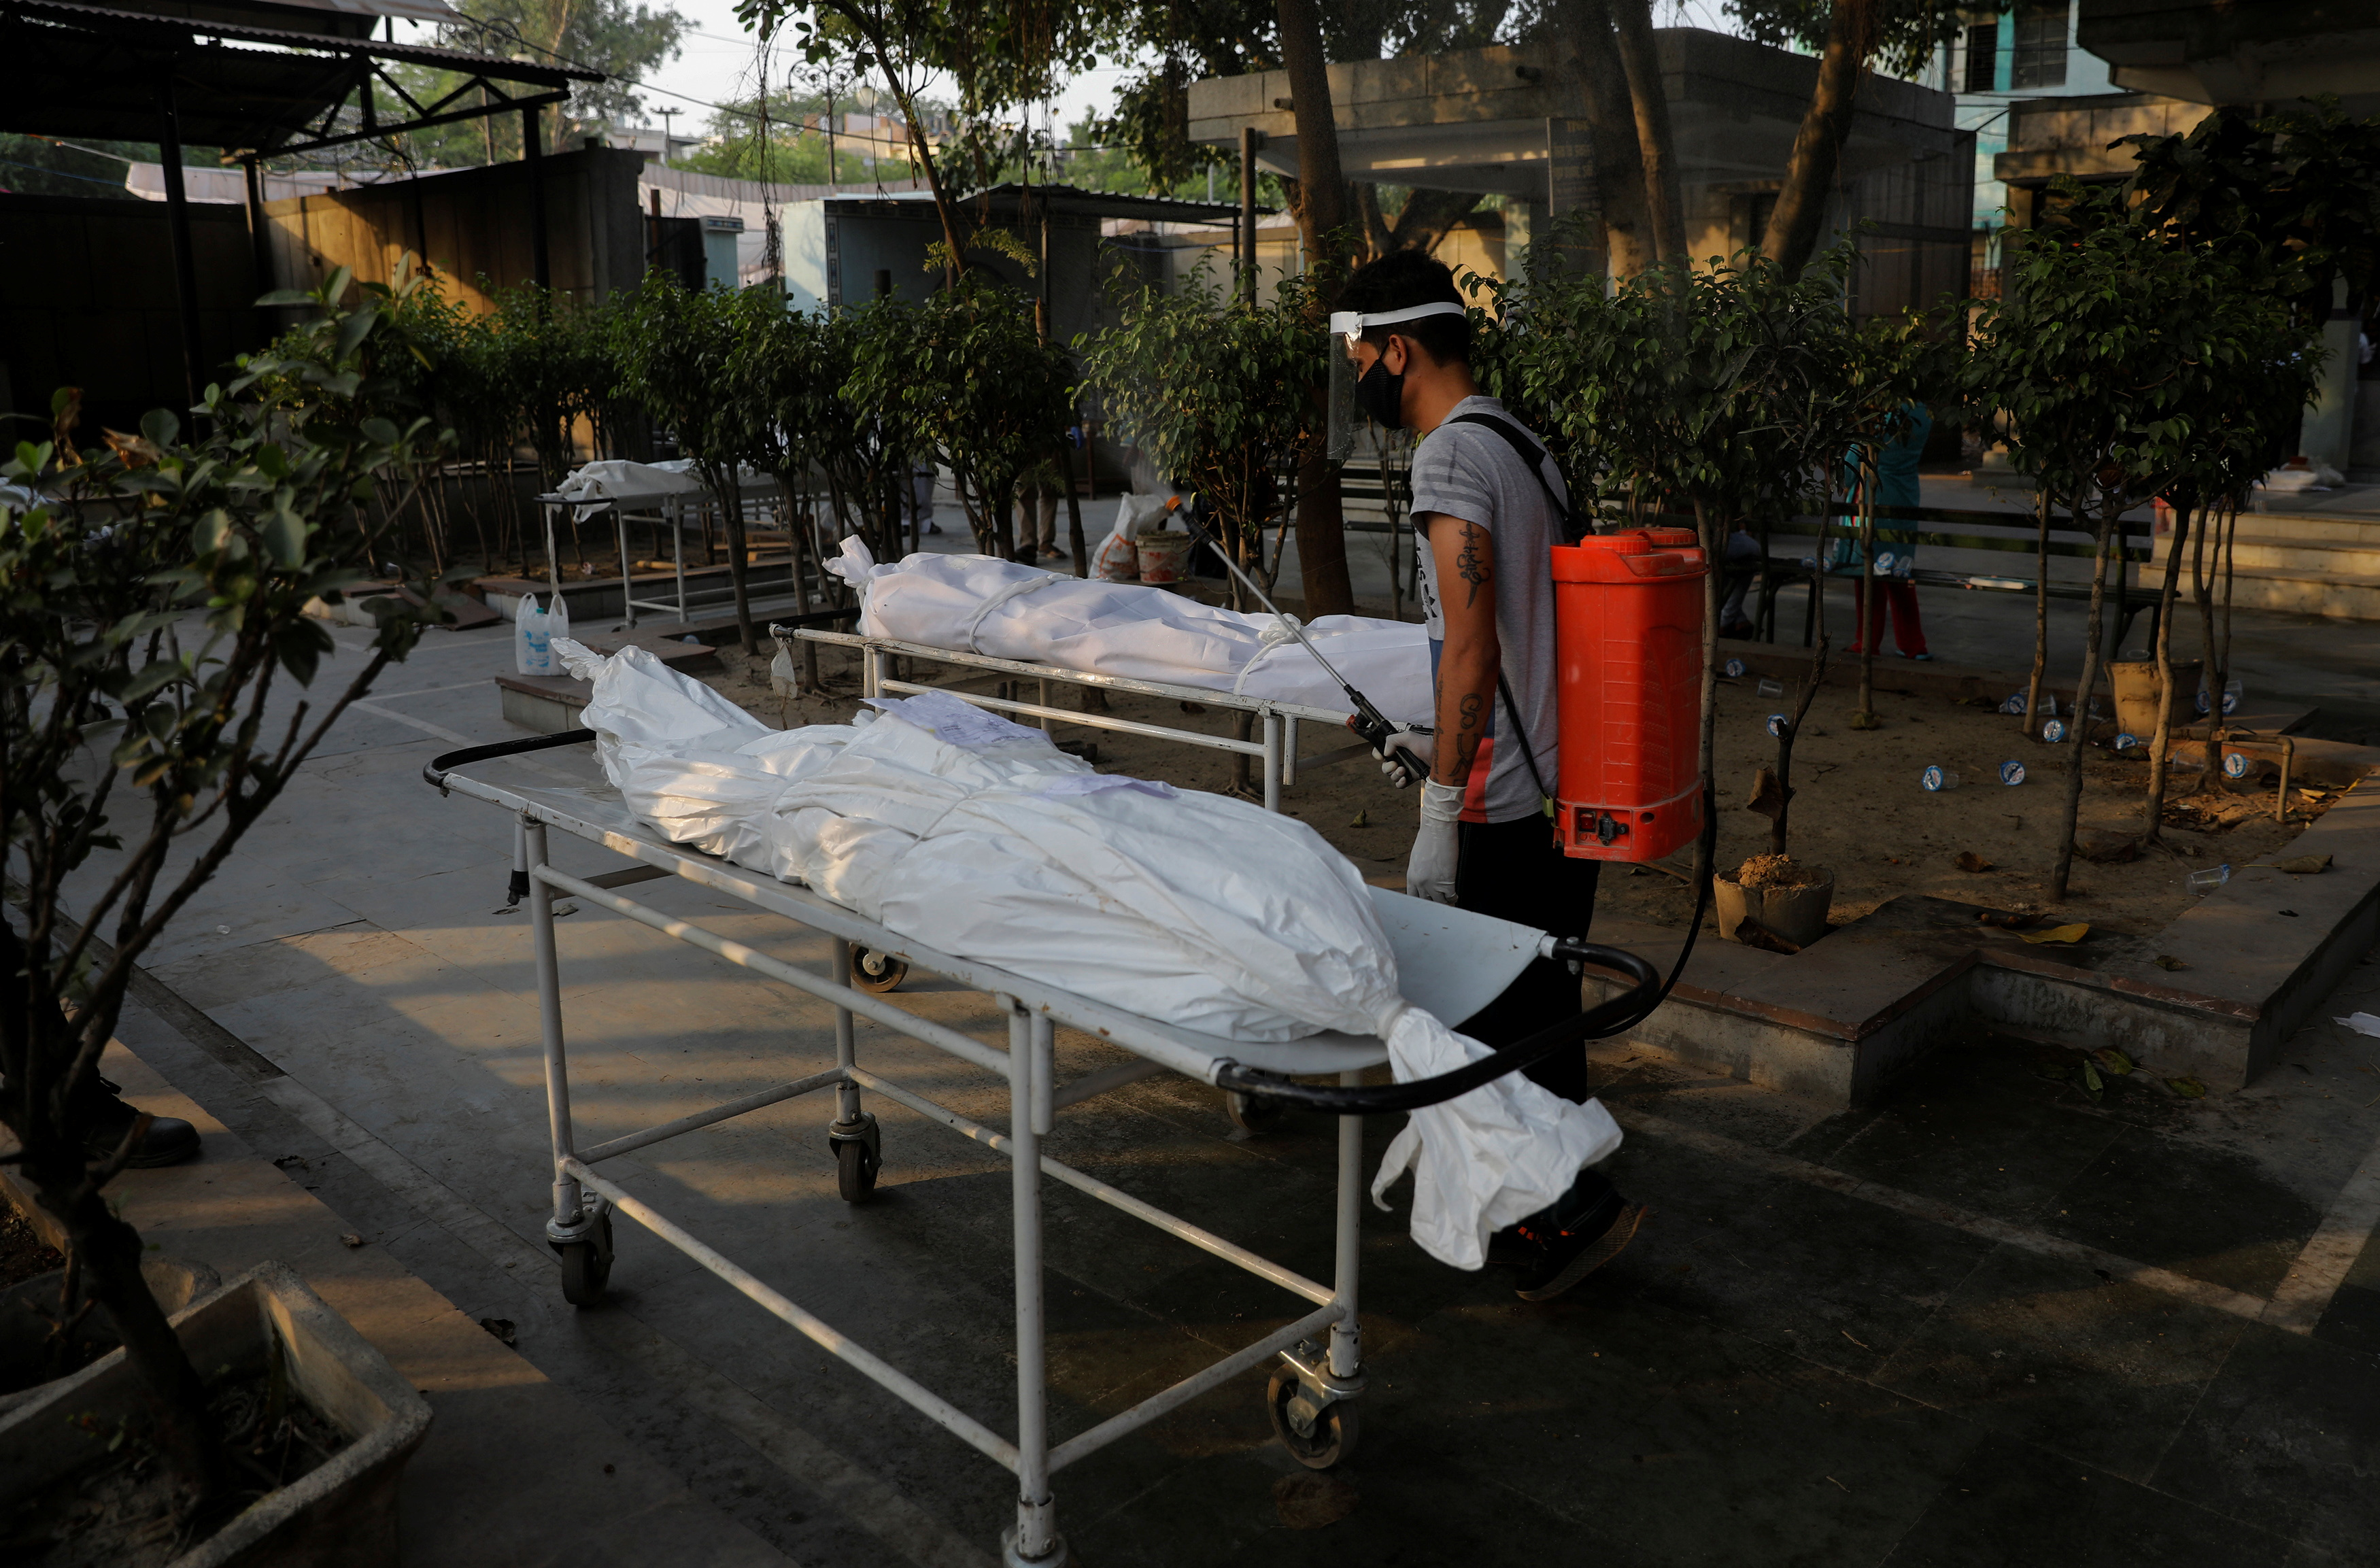 A municipal worker sprays disinfectant on the bodies of victims who died due to the coronavirus disease (COVID-19), at a crematorium in New Delhi, India, May 10, 2021. REUTERS/Adnan Abidi